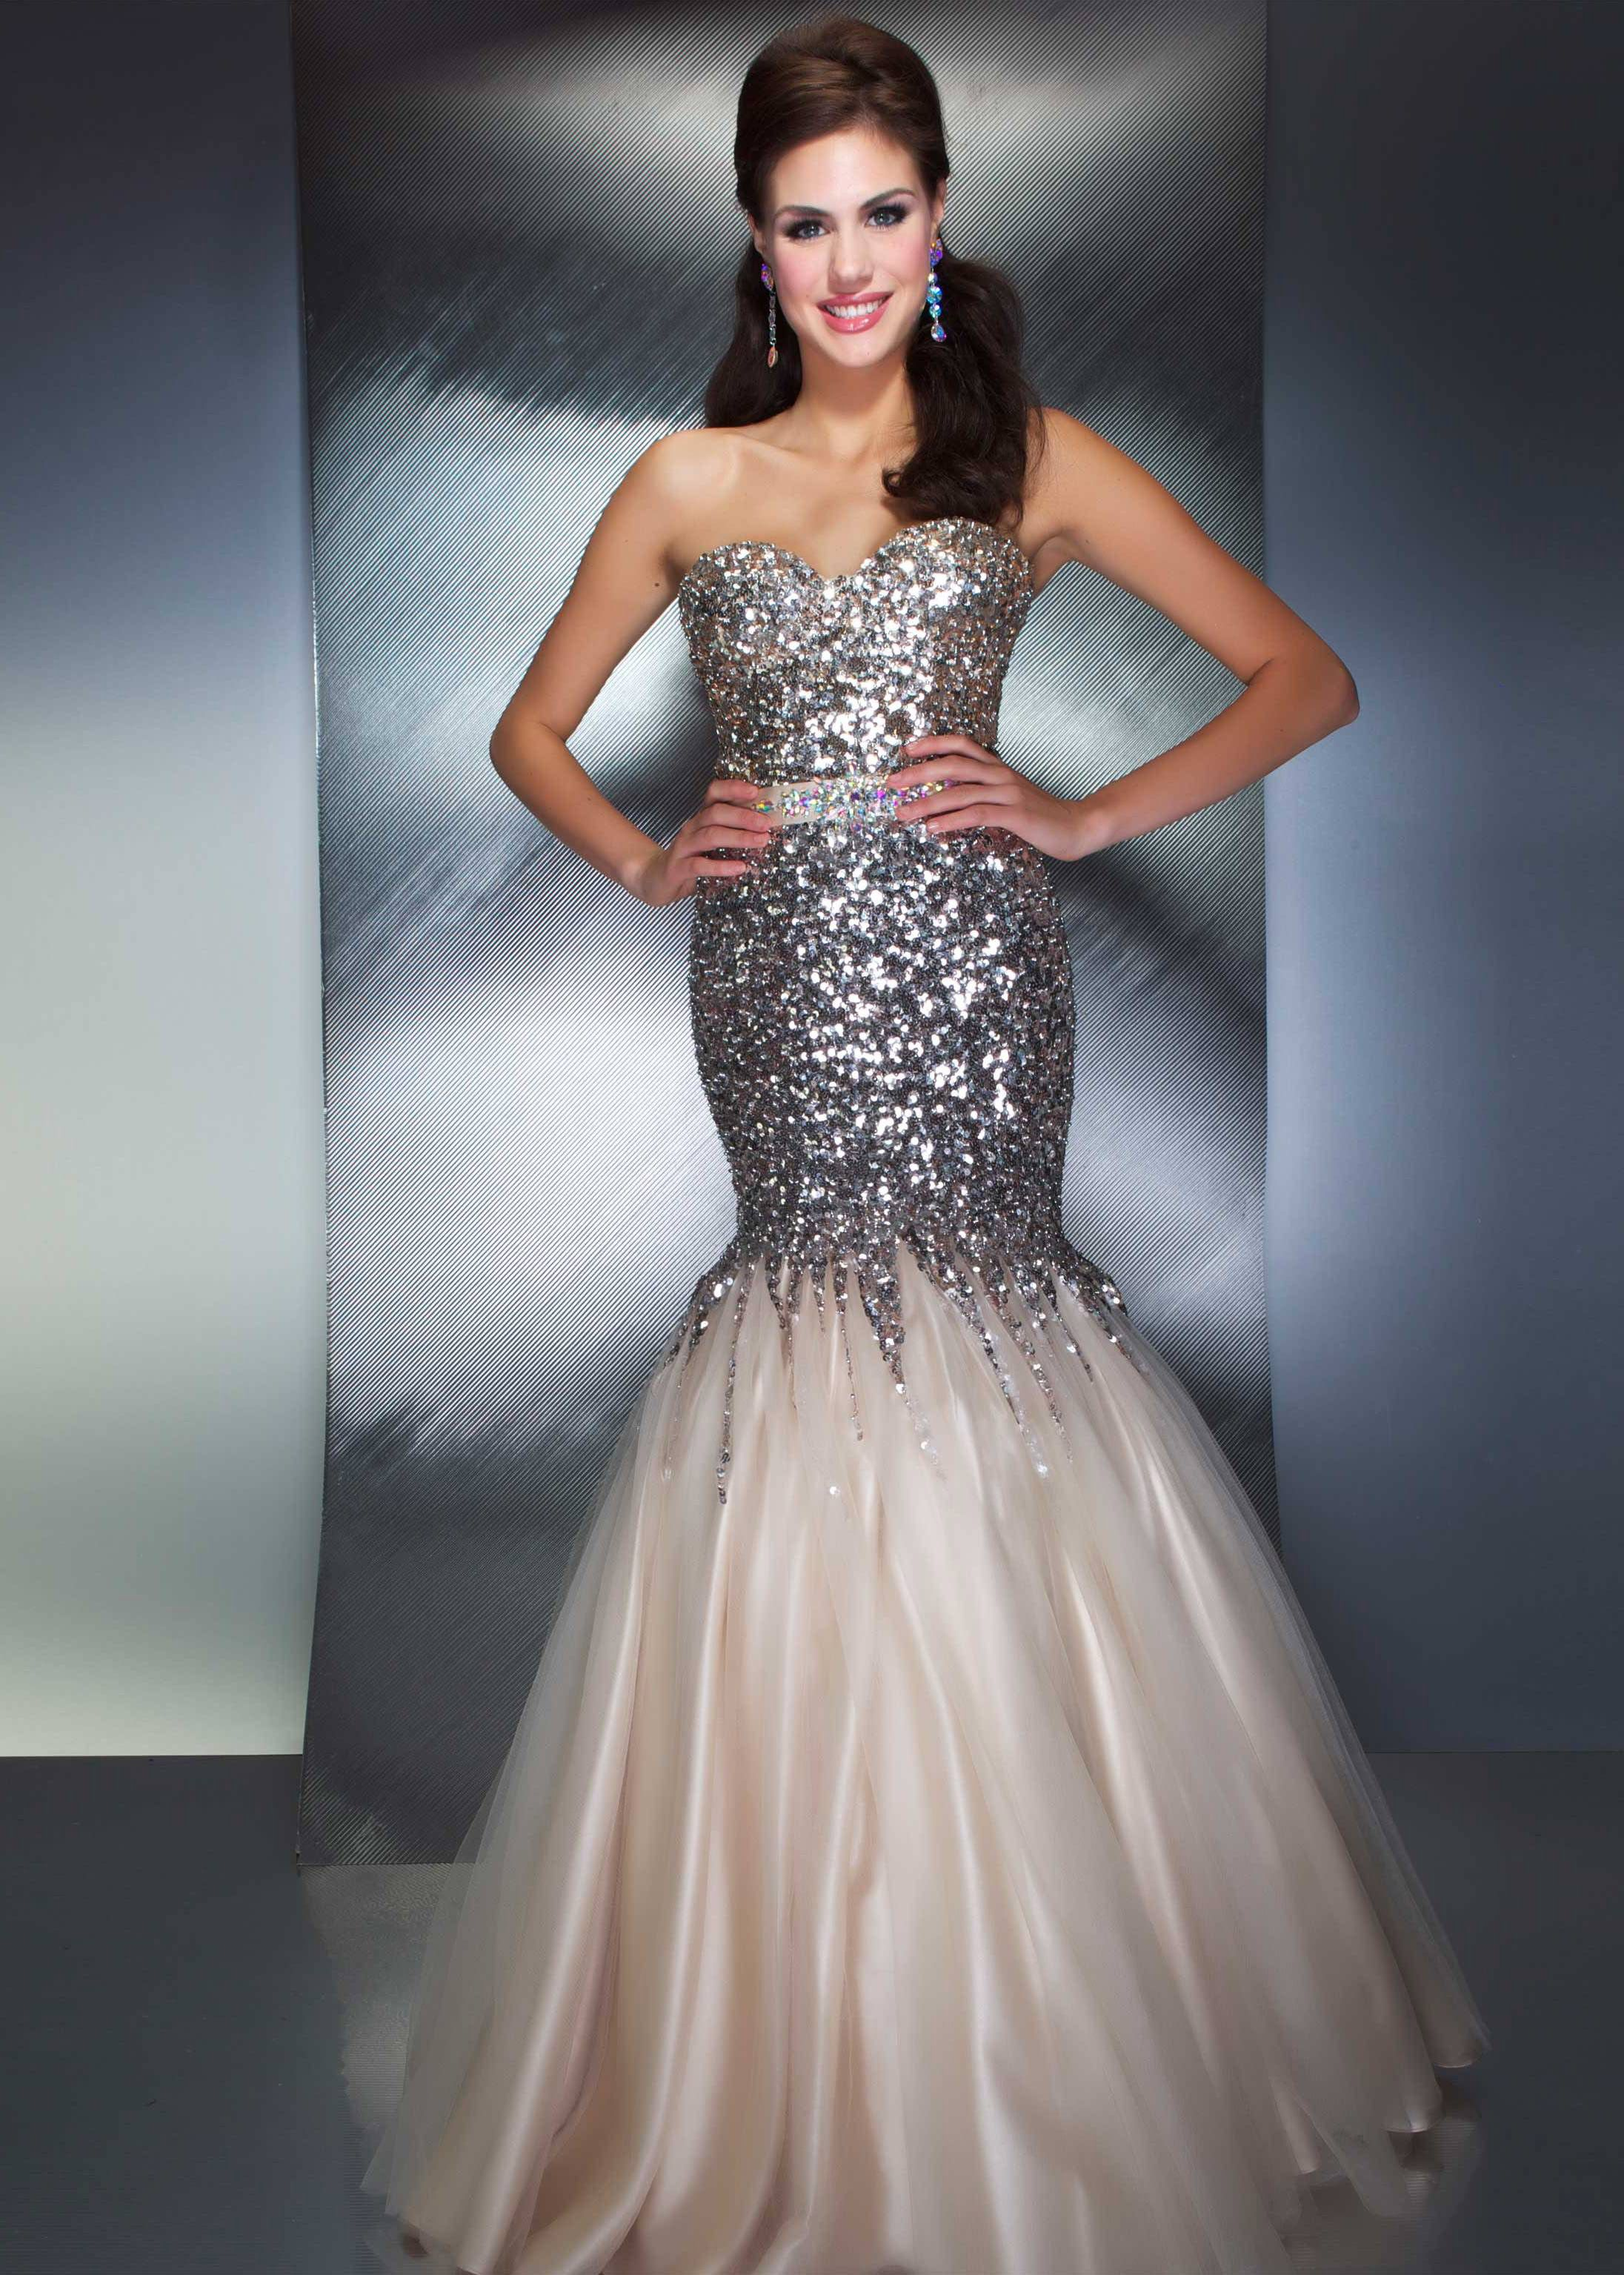 Buy now Mac Duggal 85142M nude sweetheart sequin mermaid prom dresses  available now at RissyRoos.com. 07f5442d04d9